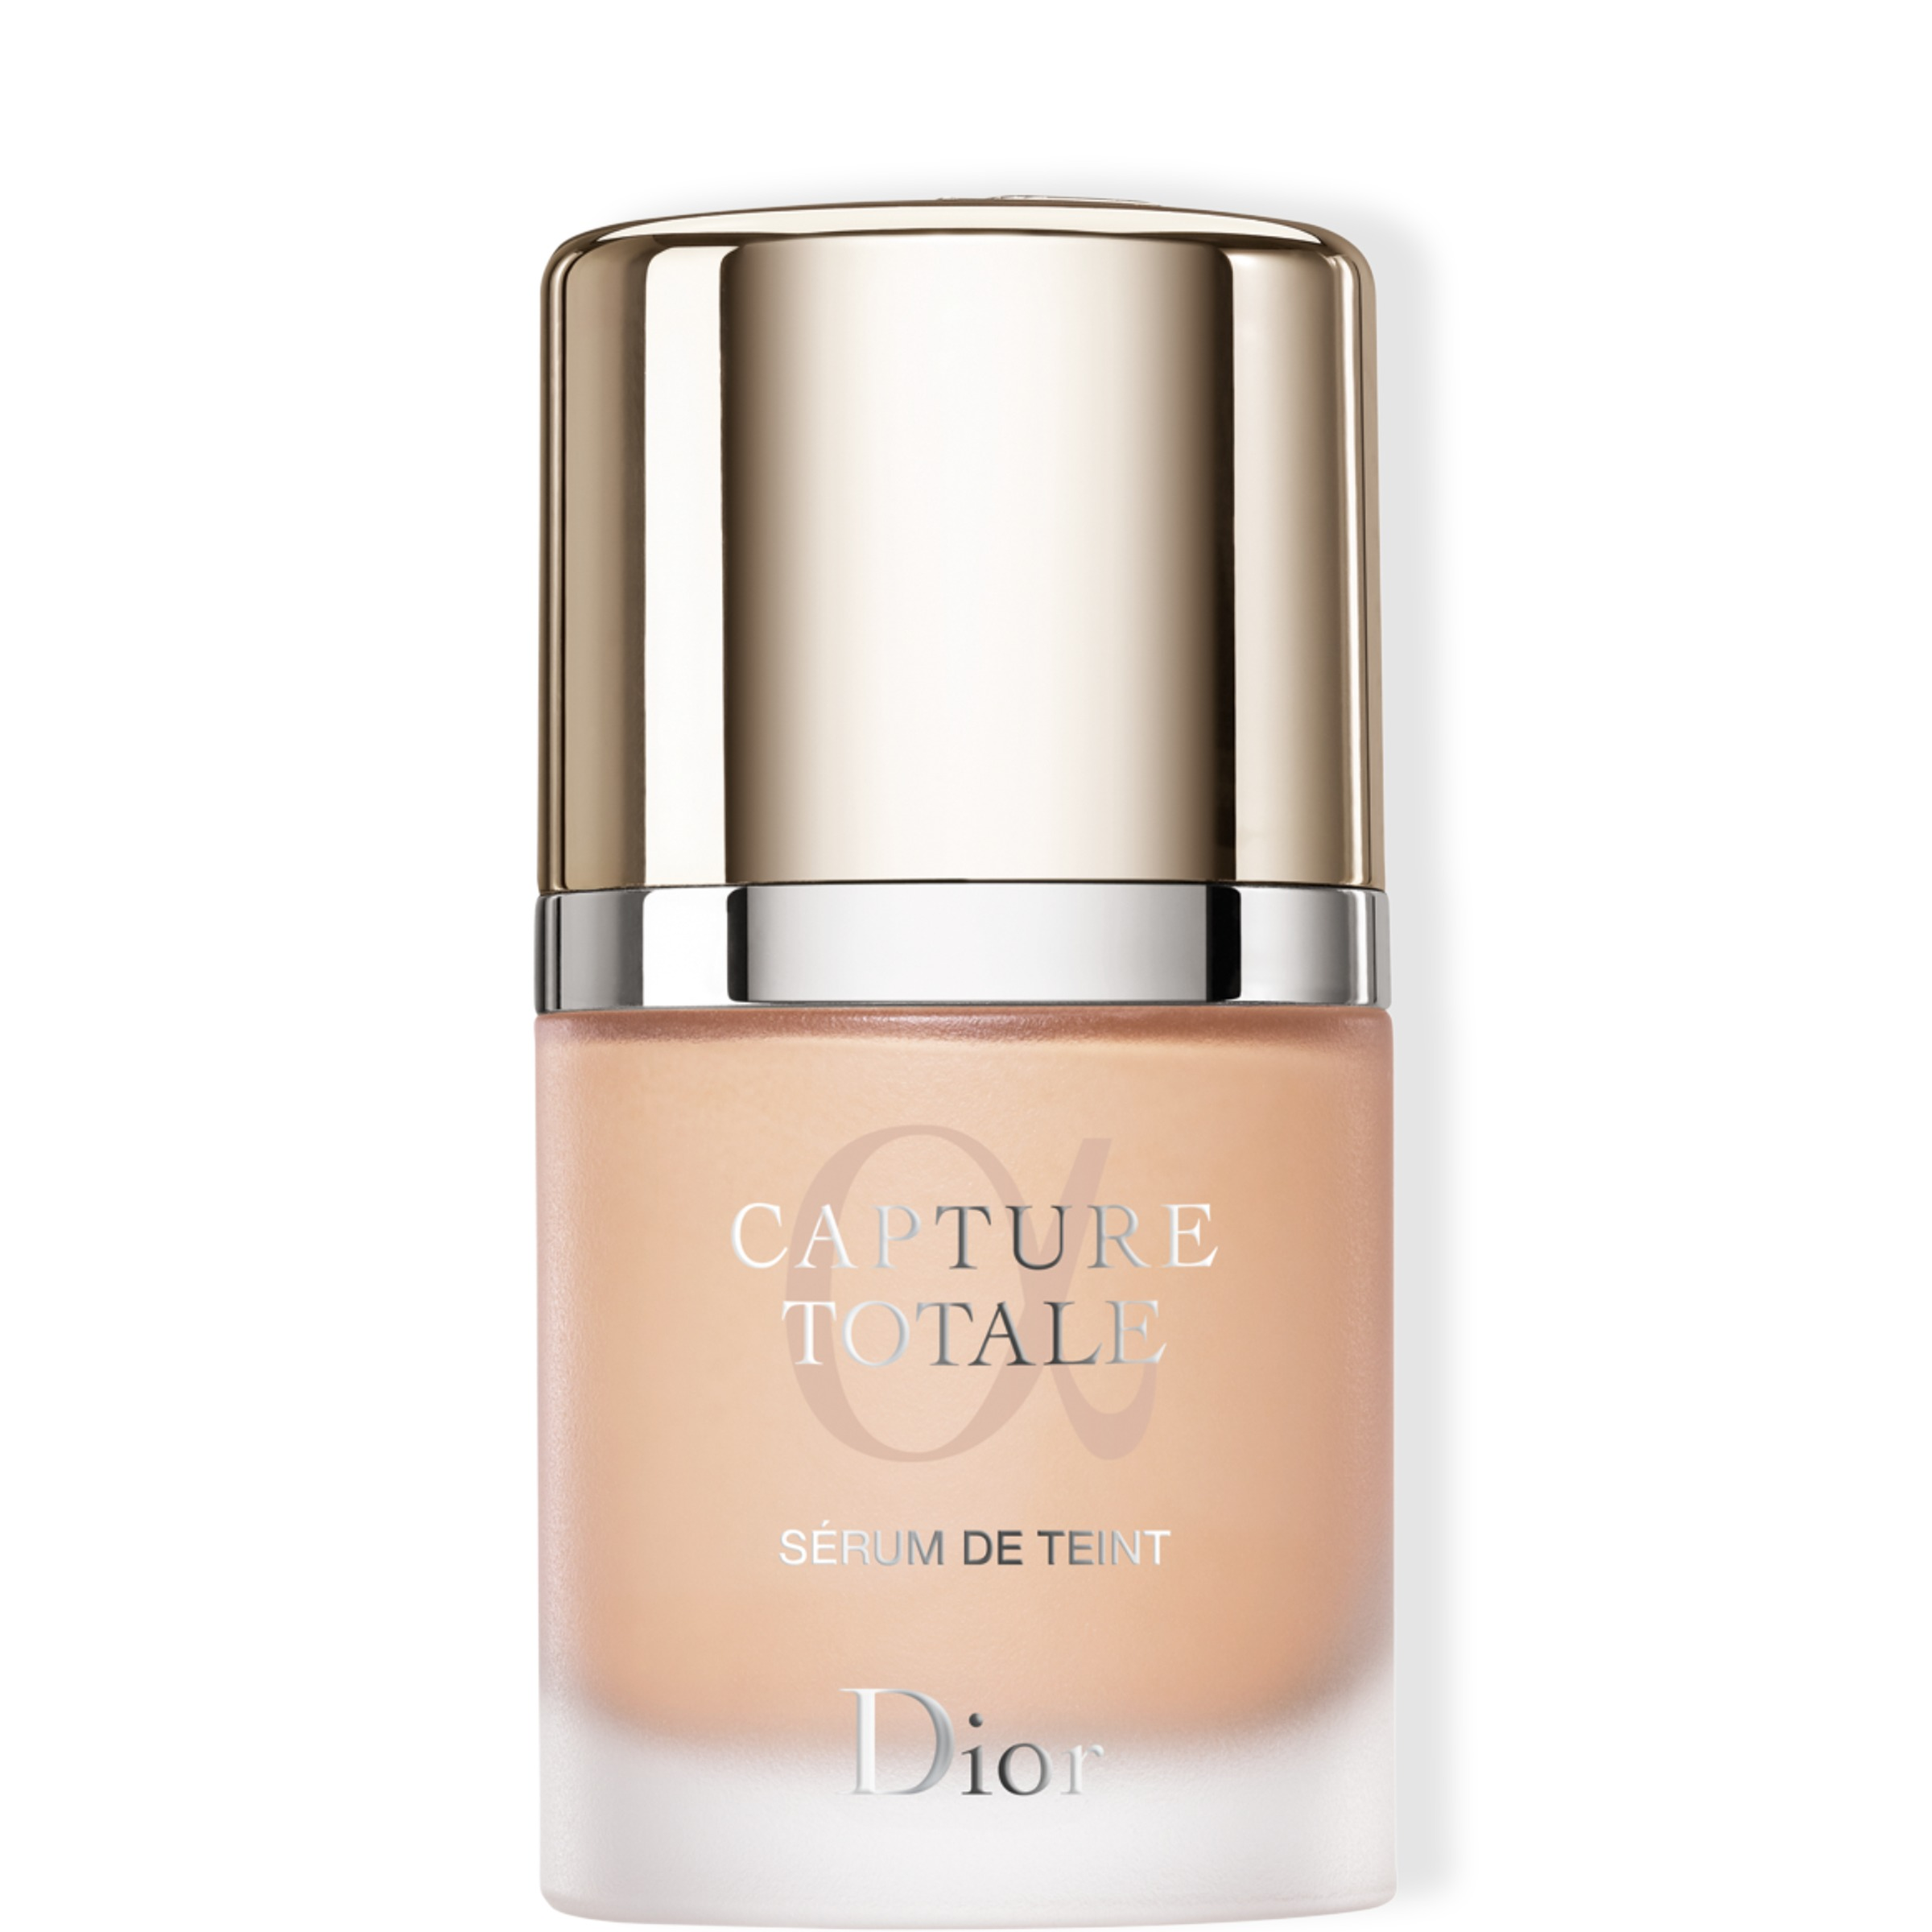 Capture Totale Serum Foundation 020 Light Beige